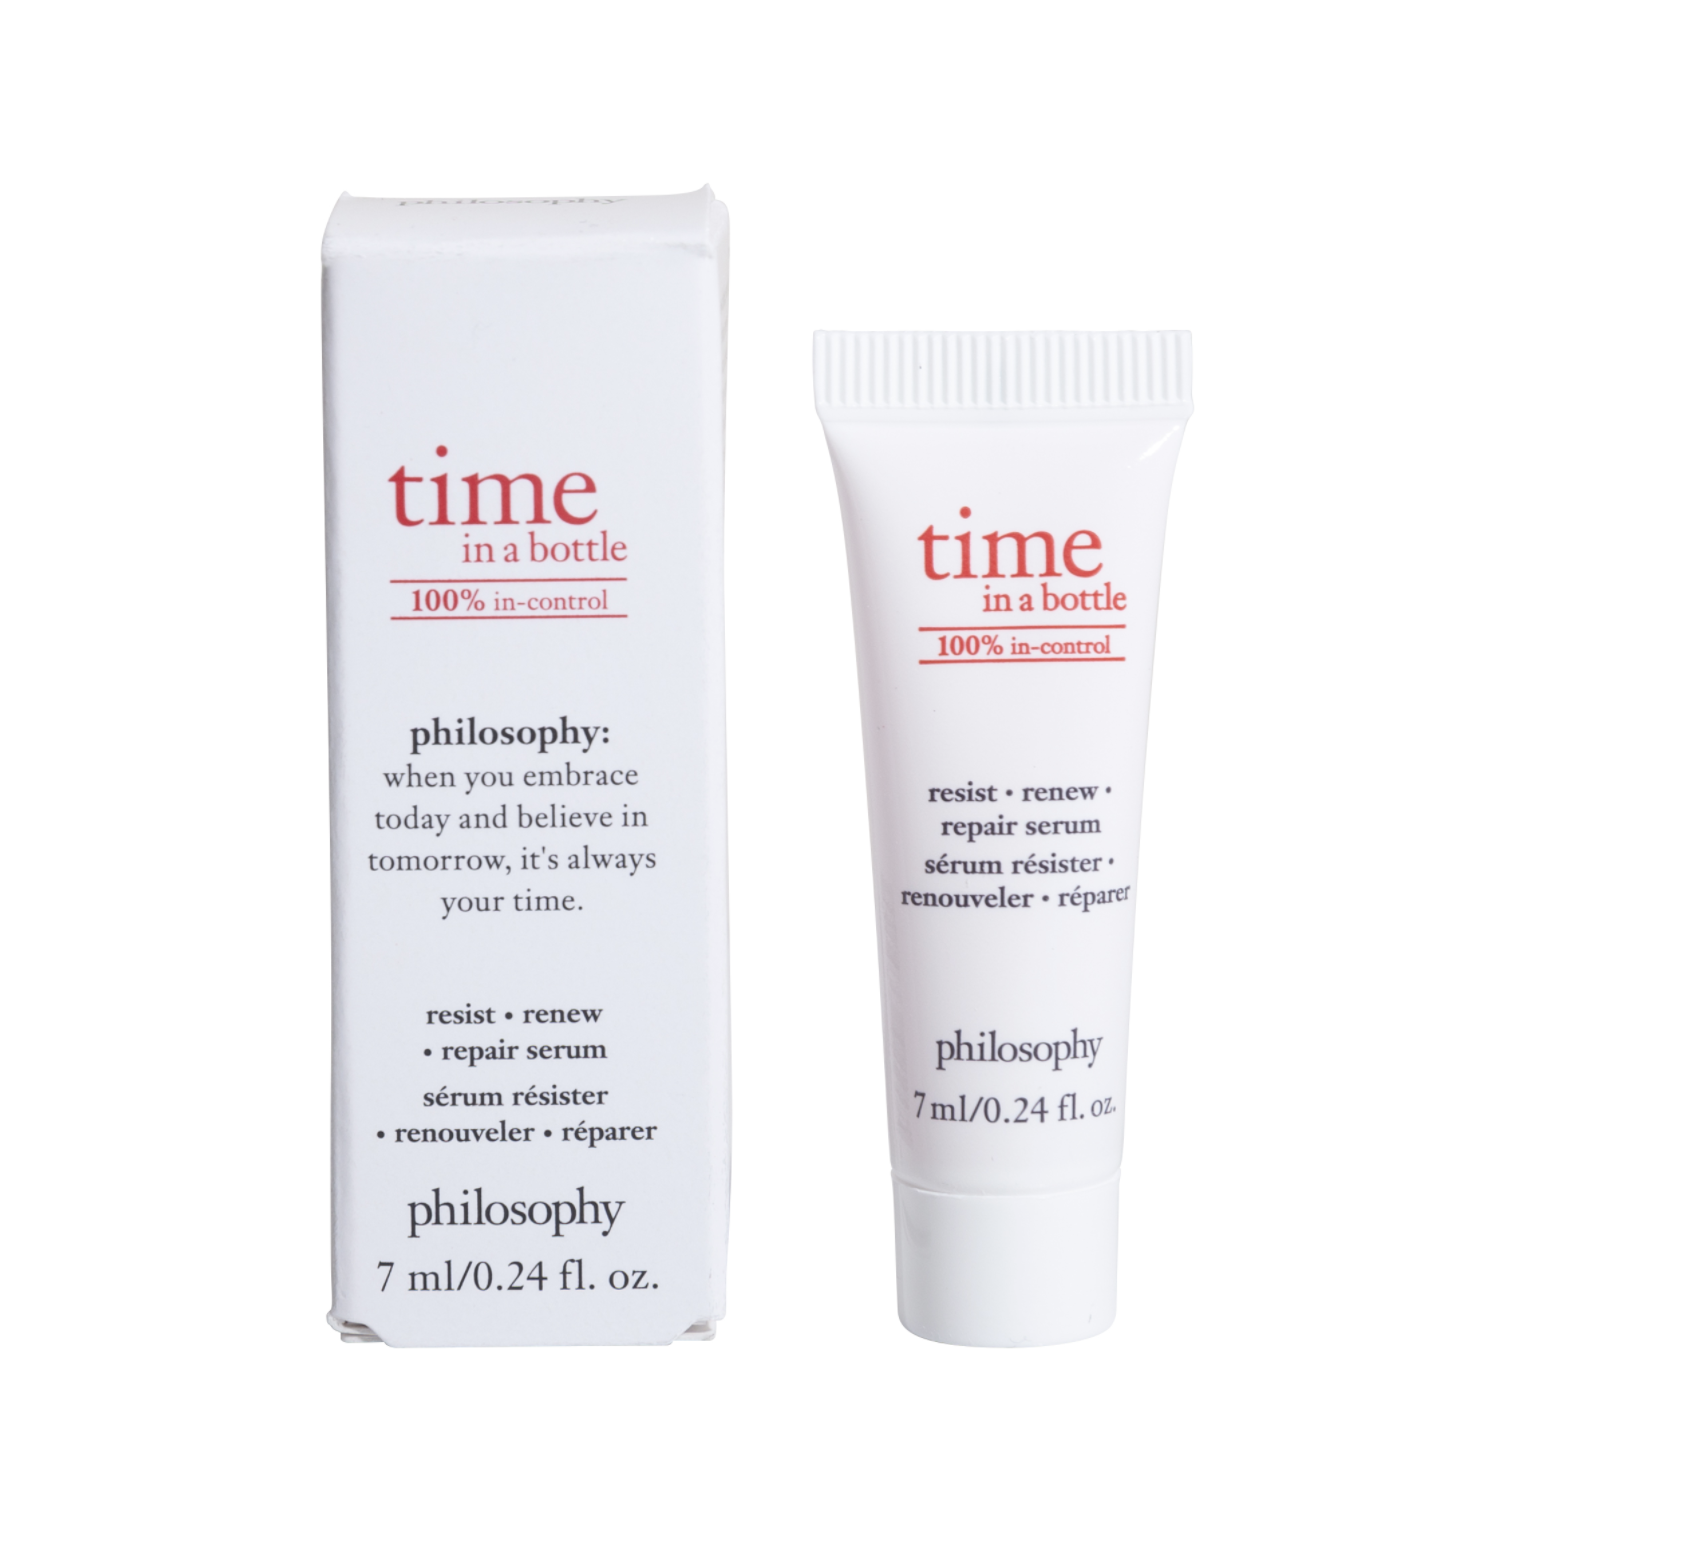 time in a bottle 100% in control serum